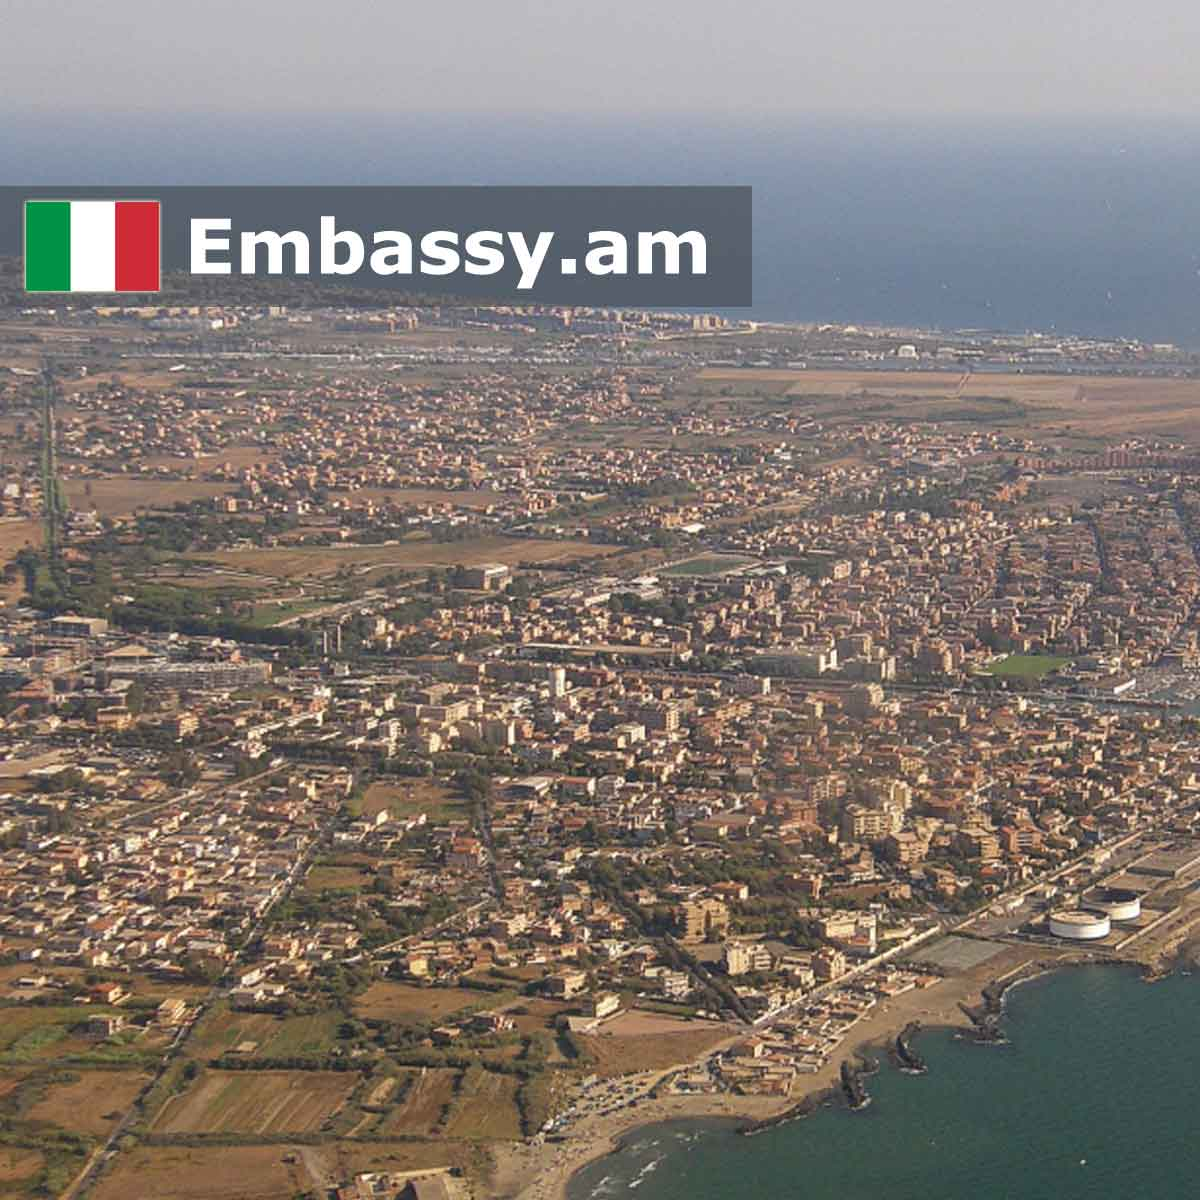 Fiumicino - Hotels in Italy - Embassy.am